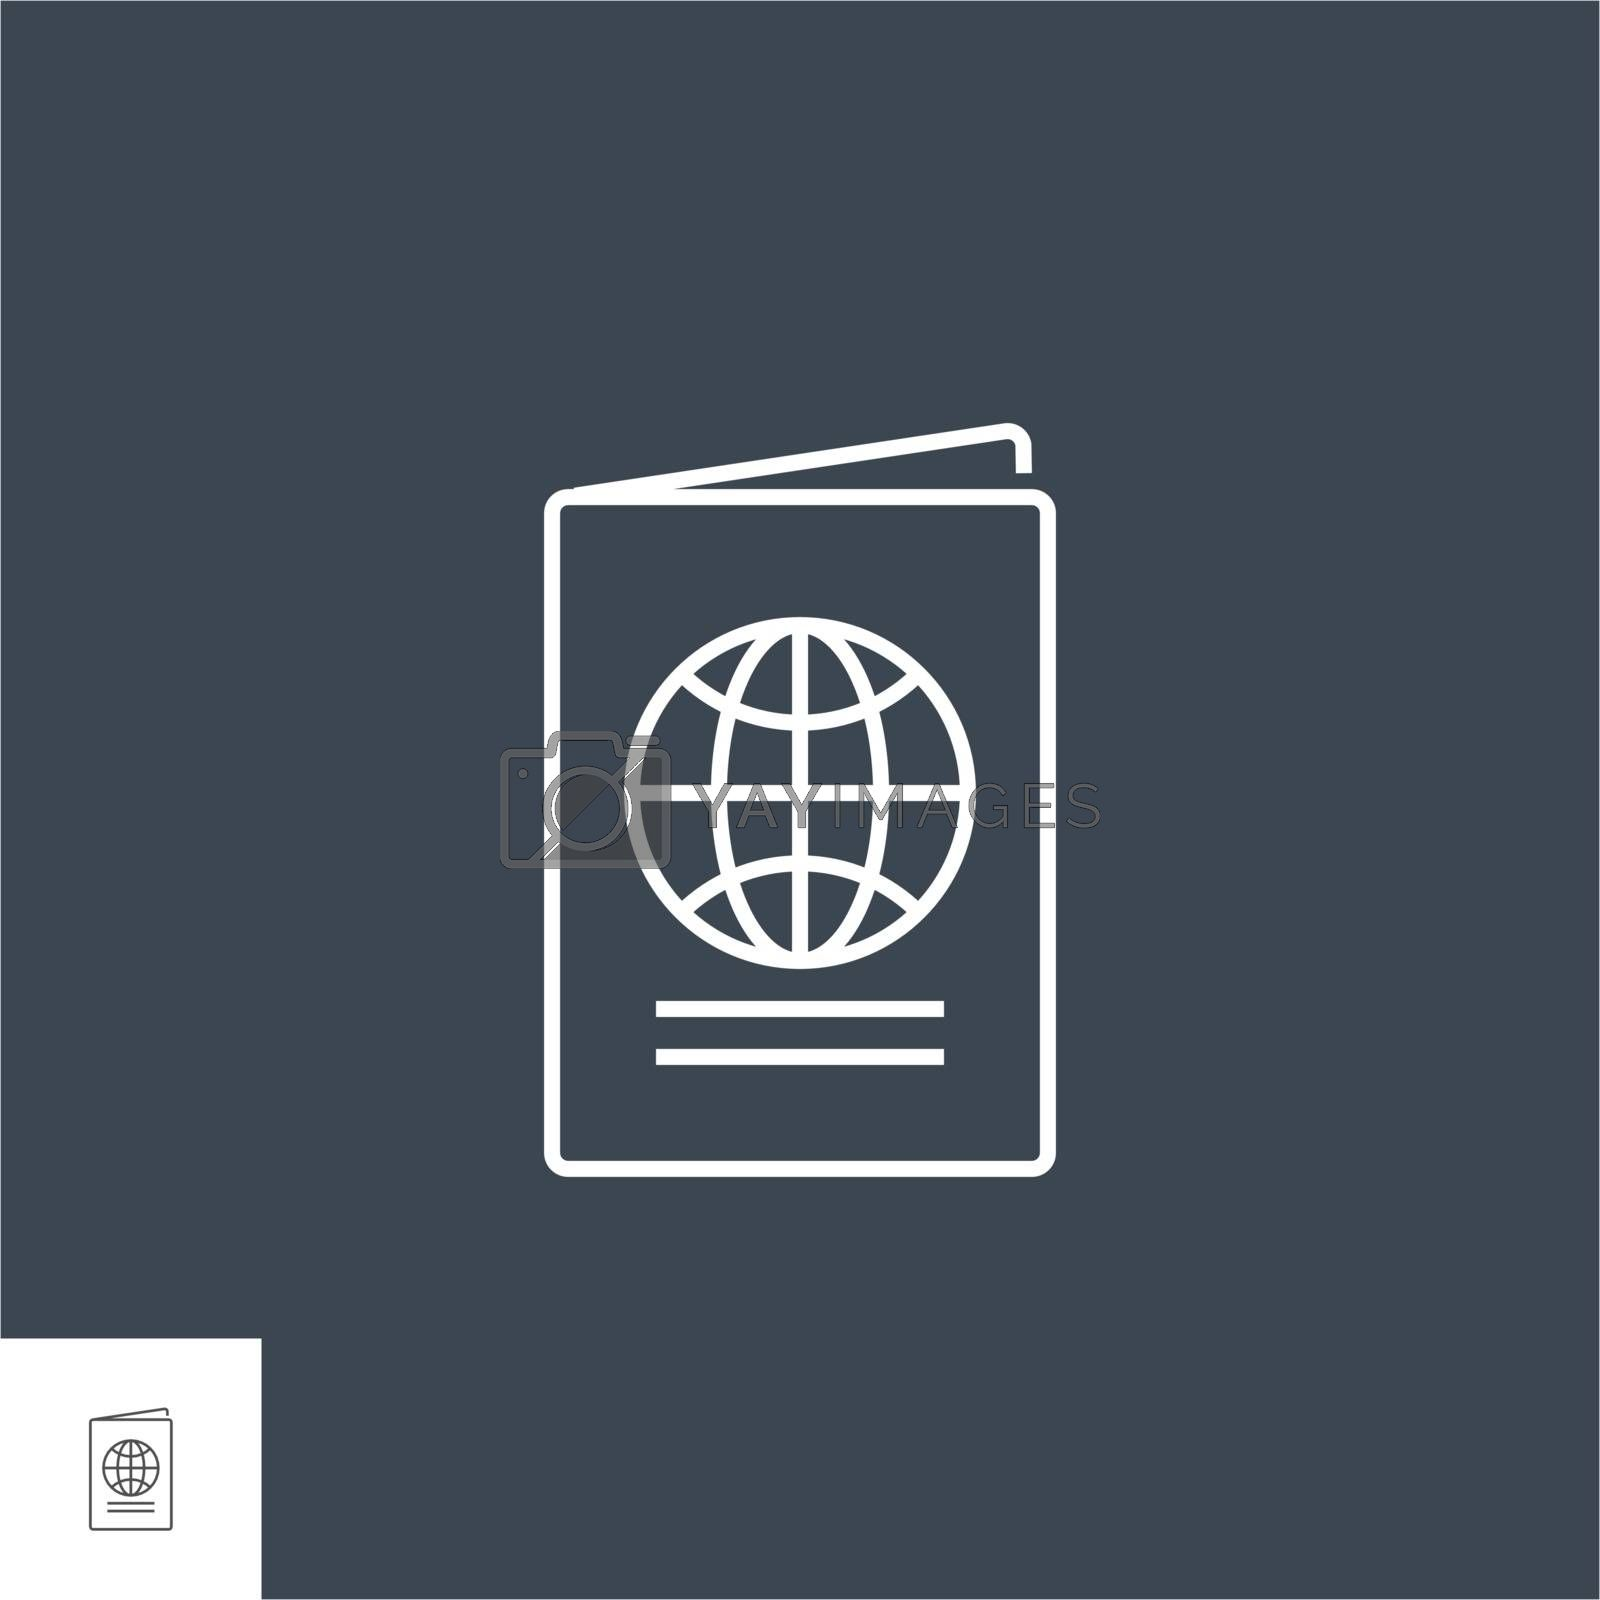 Passport Related Vector Line Icon. by smoki